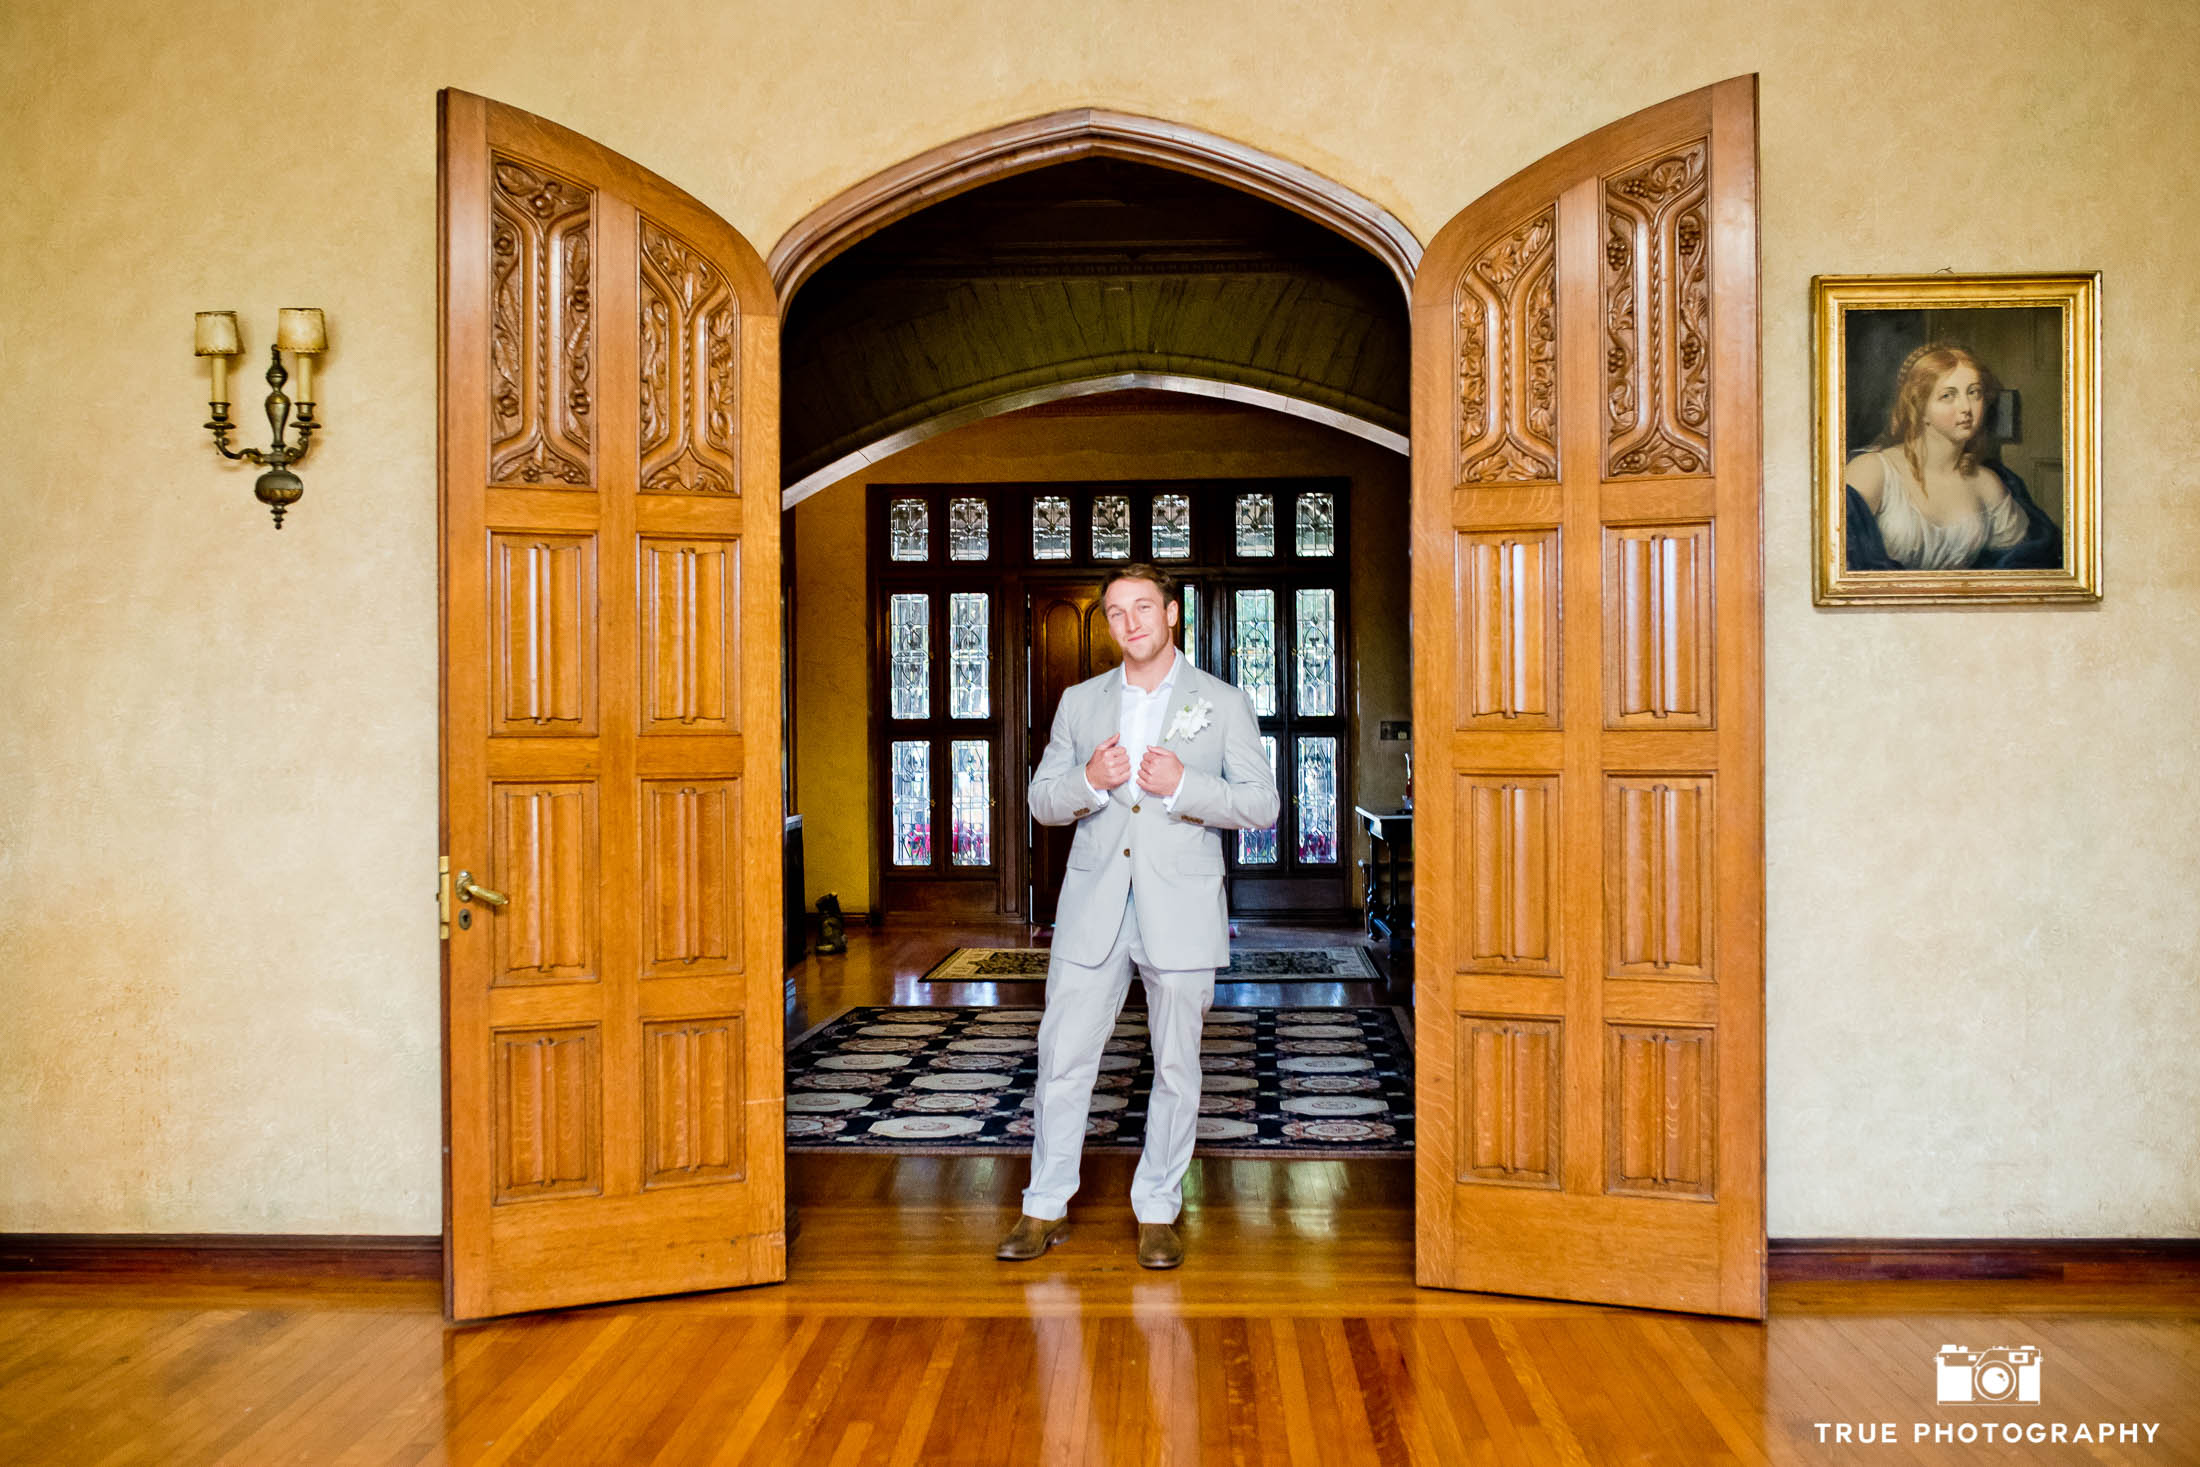 Grand Historical Mansion portrait of groom inside archway